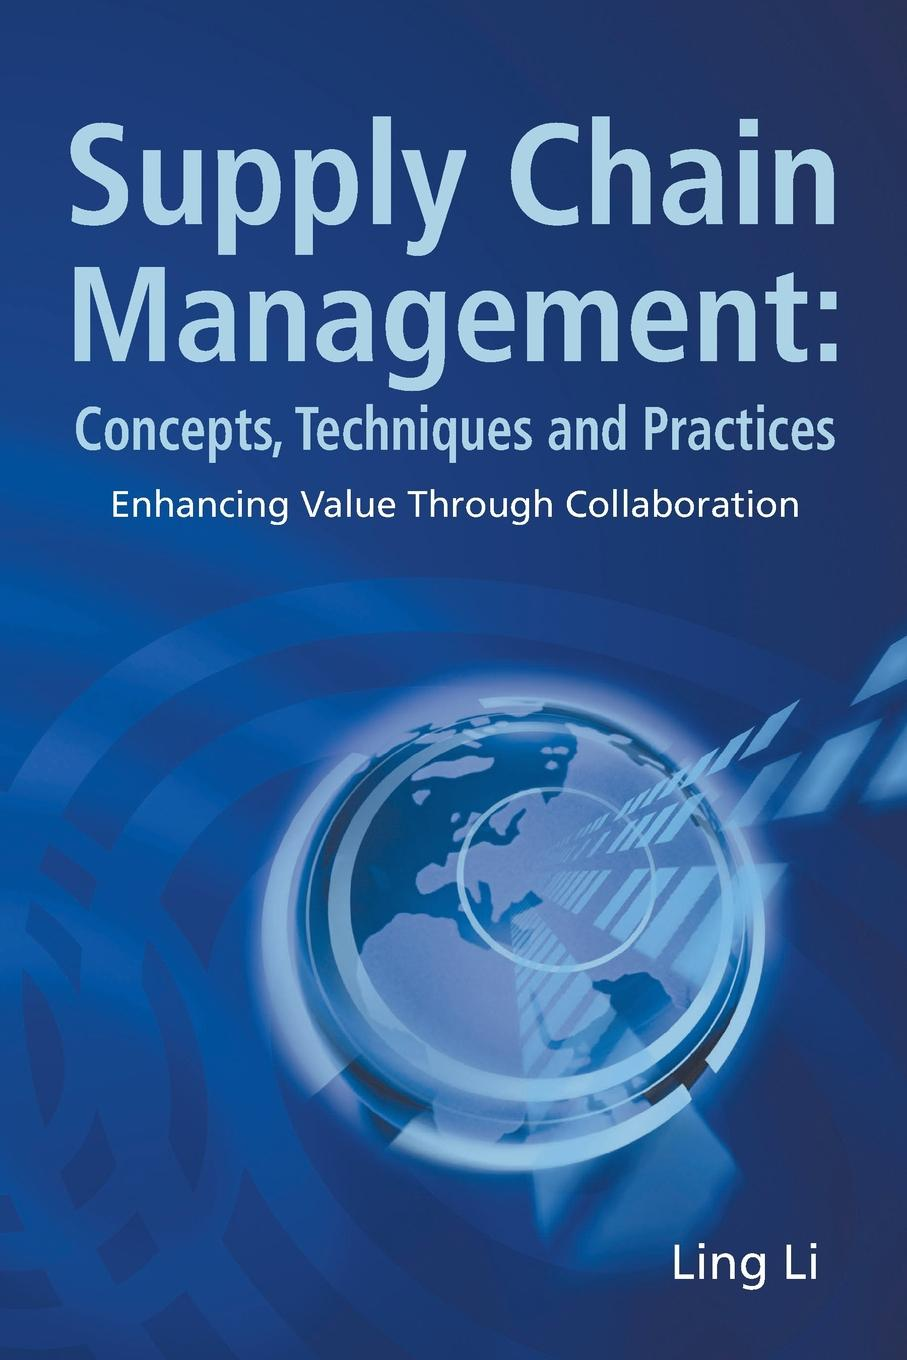 Ling Li SUPPLY CHAIN MANAGEMENT. CONCEPTS, TECHNIQUES AND PRACTICES: ENHANCING THE VALUE THROUGH COLLABORATION technology management